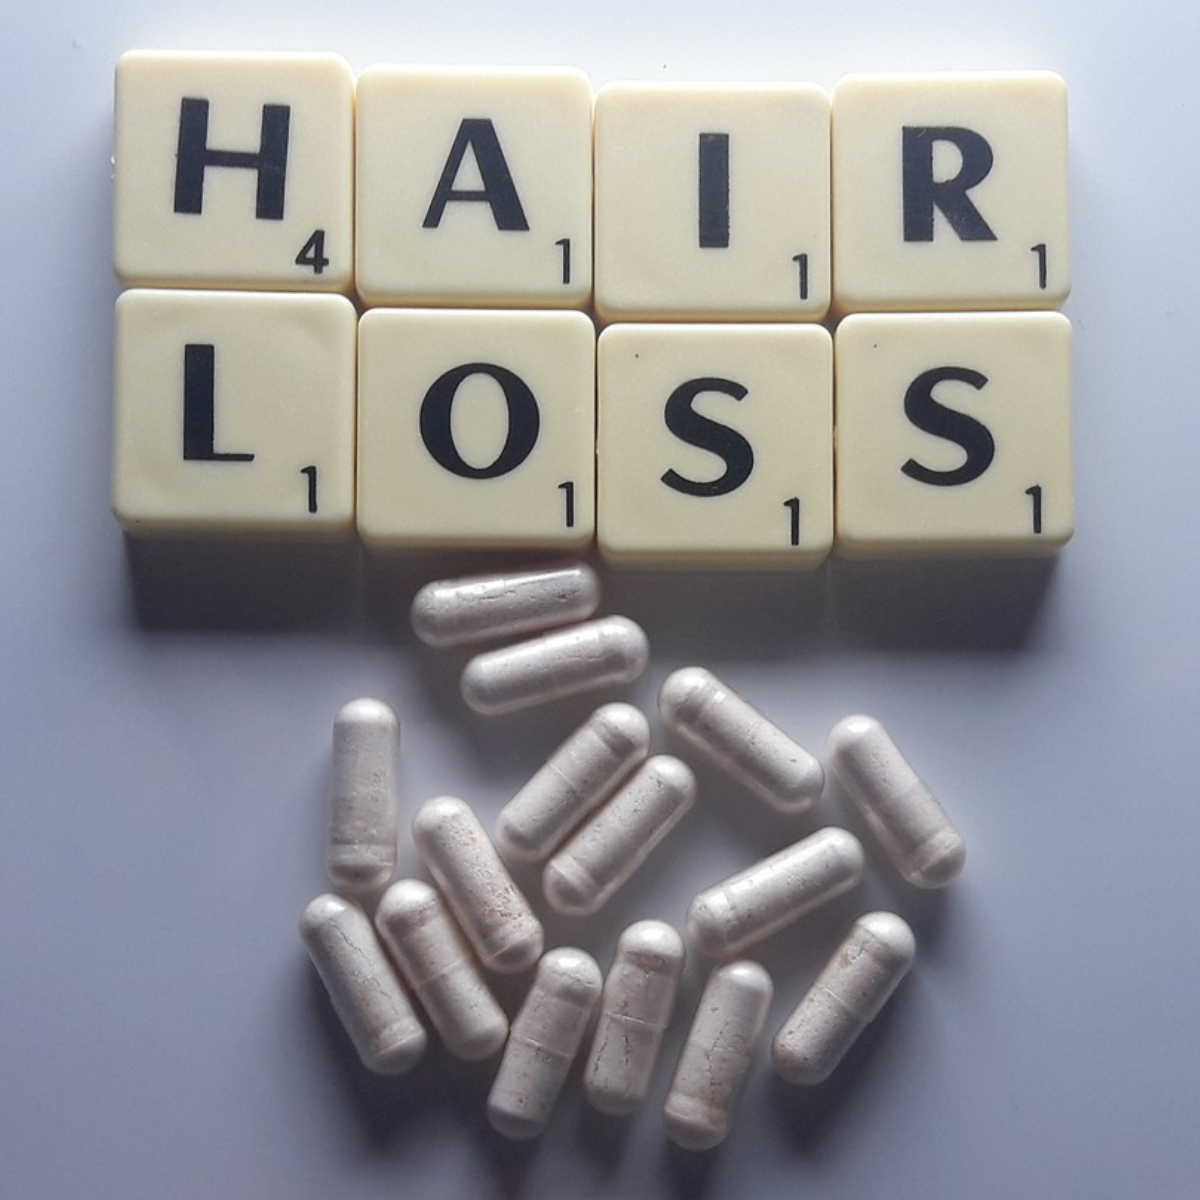 Hair Loss: What is Platelet Rich Plasma aka PRP and how effective is it for hair regrowth treatment?